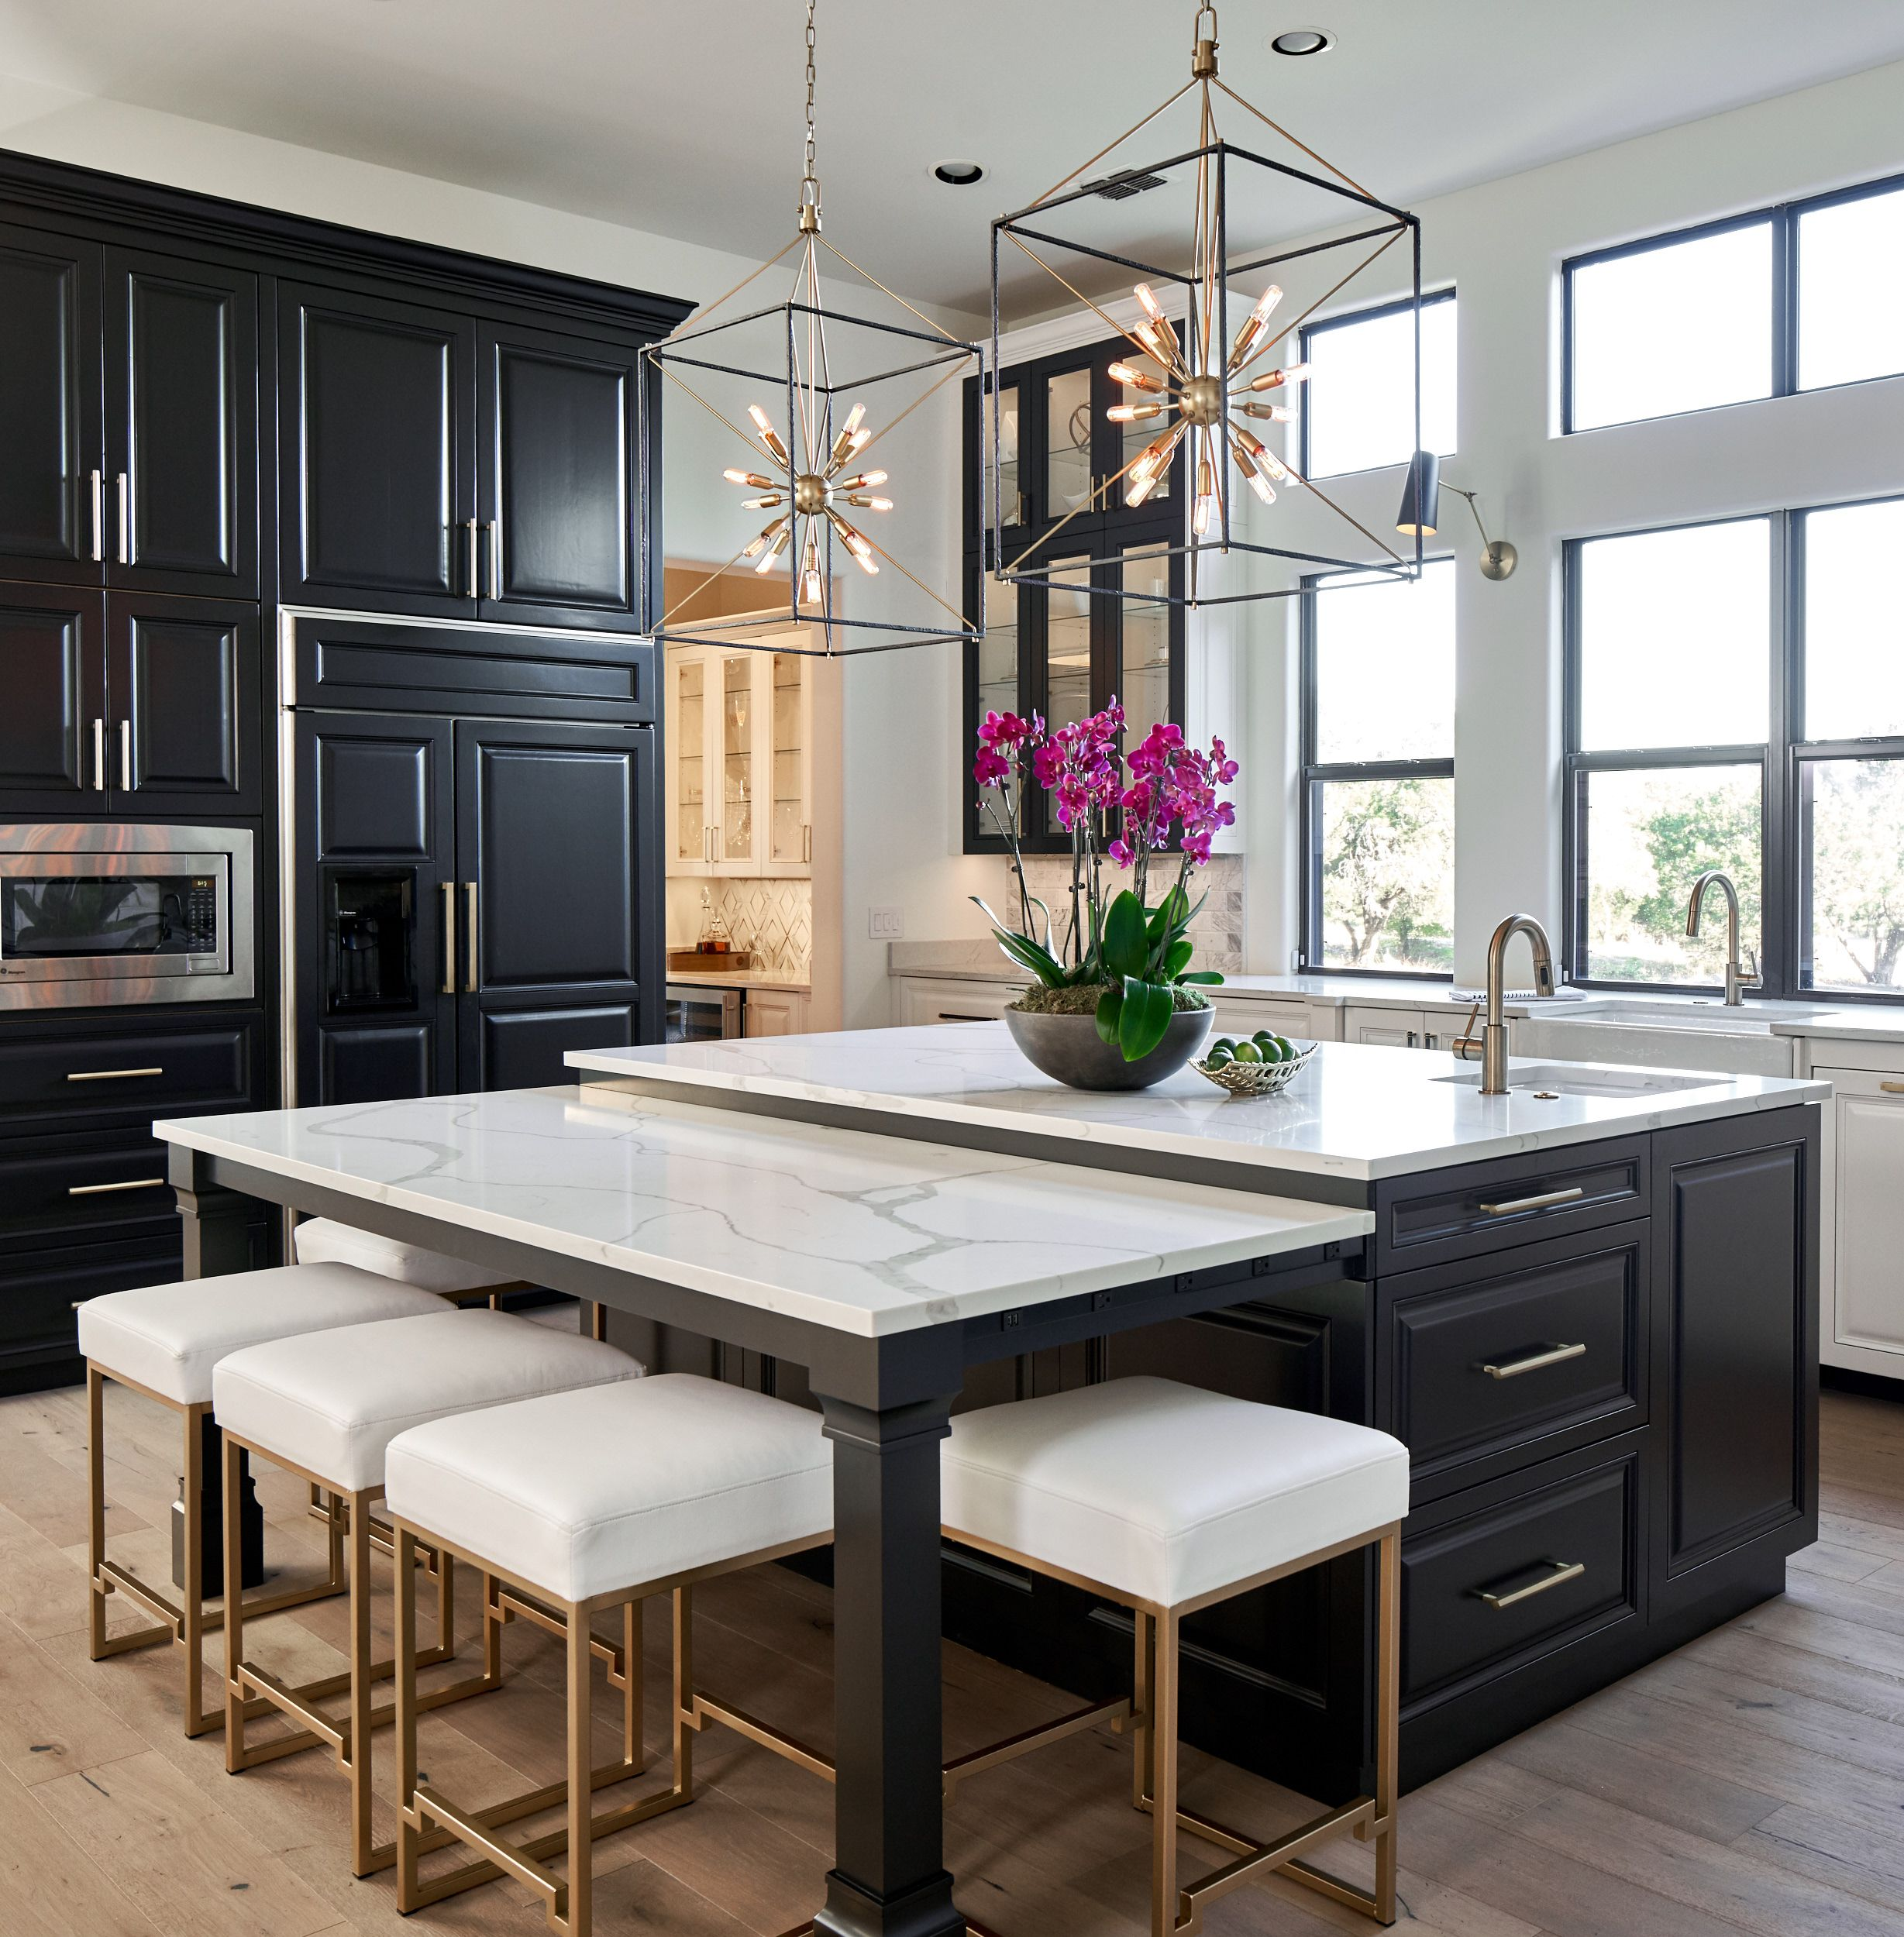 Best Black White And Gold Transitional Kitchen With European 400 x 300